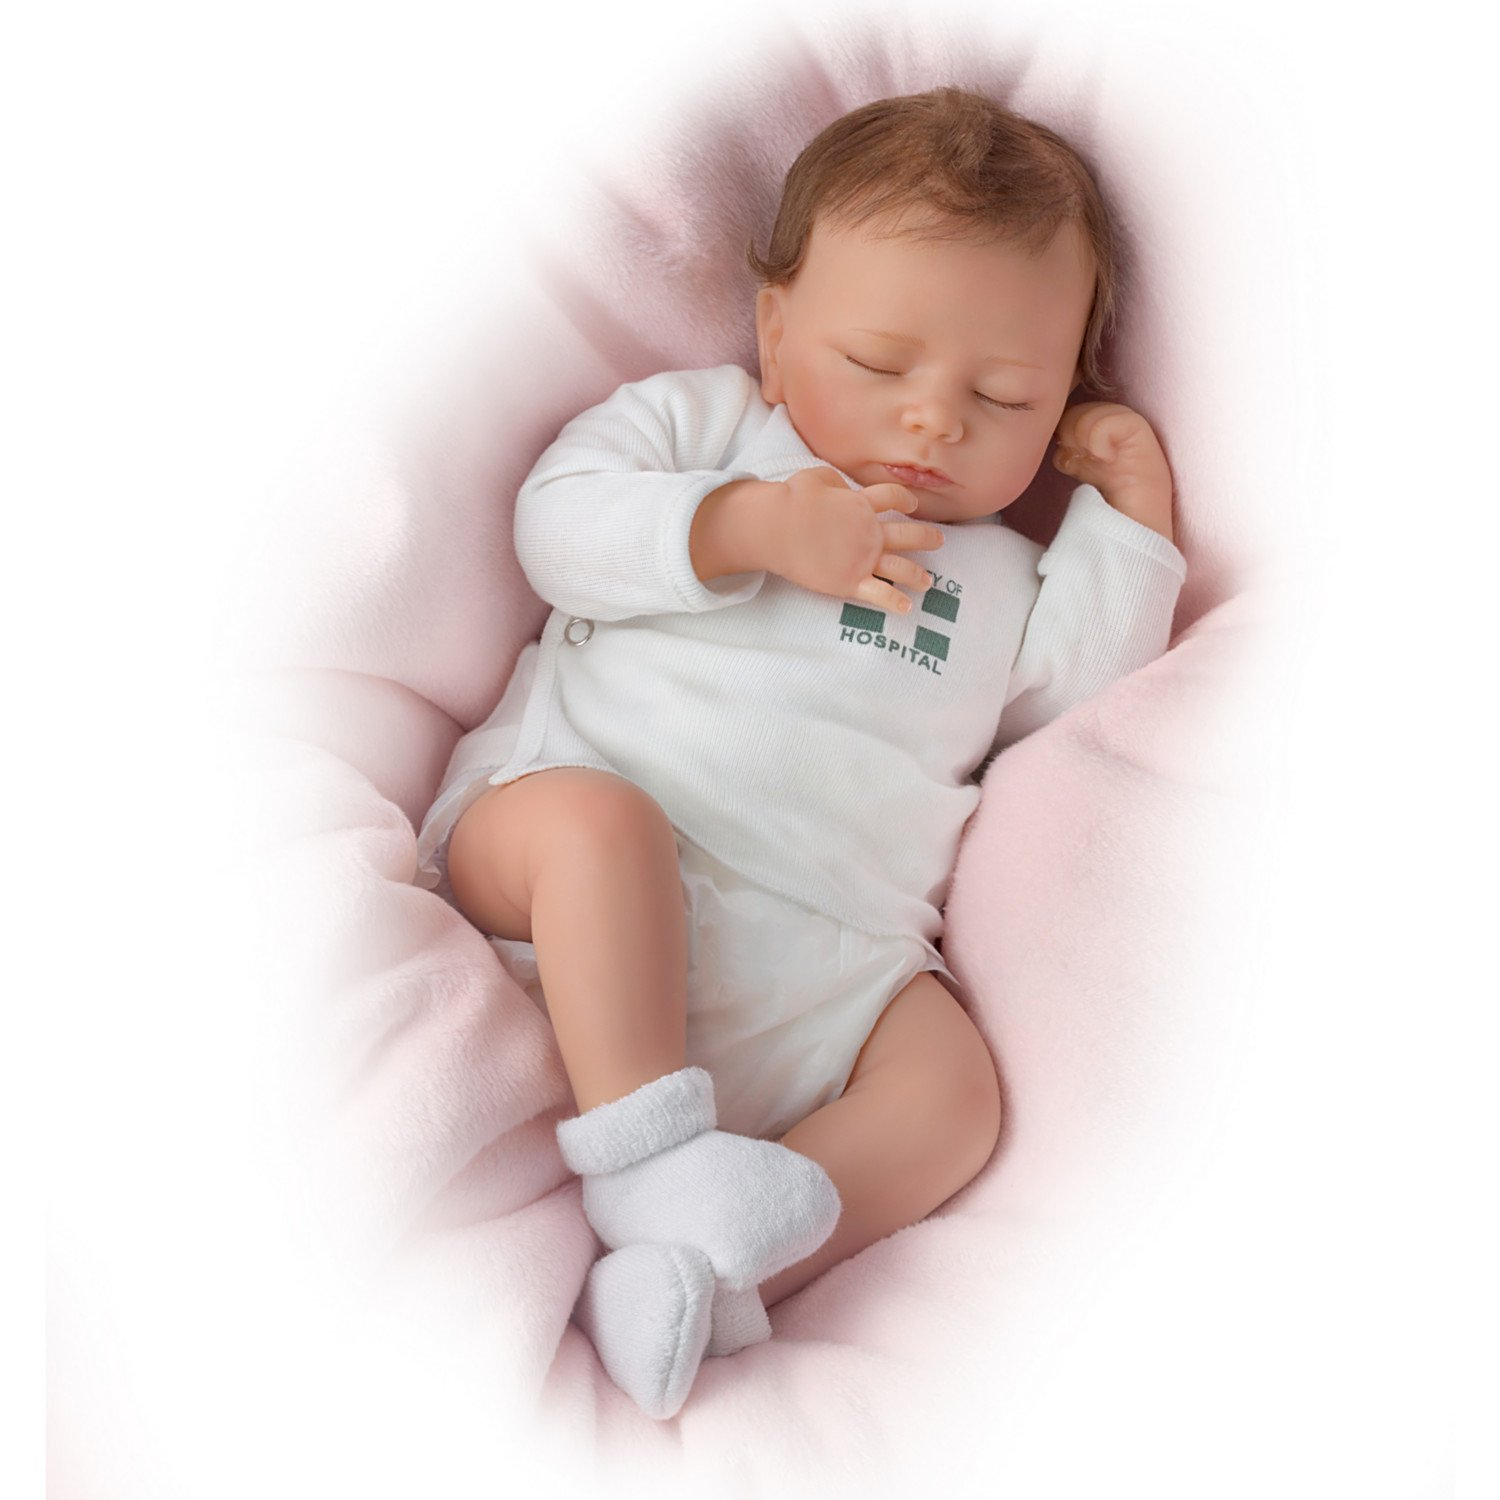 Ashley Breathes with Hand-Rooted Hair - So Truly Real® Lifelike, Interactive & Realistic Newborn Baby Doll 17-inches by The Ashton-Drake Galleries